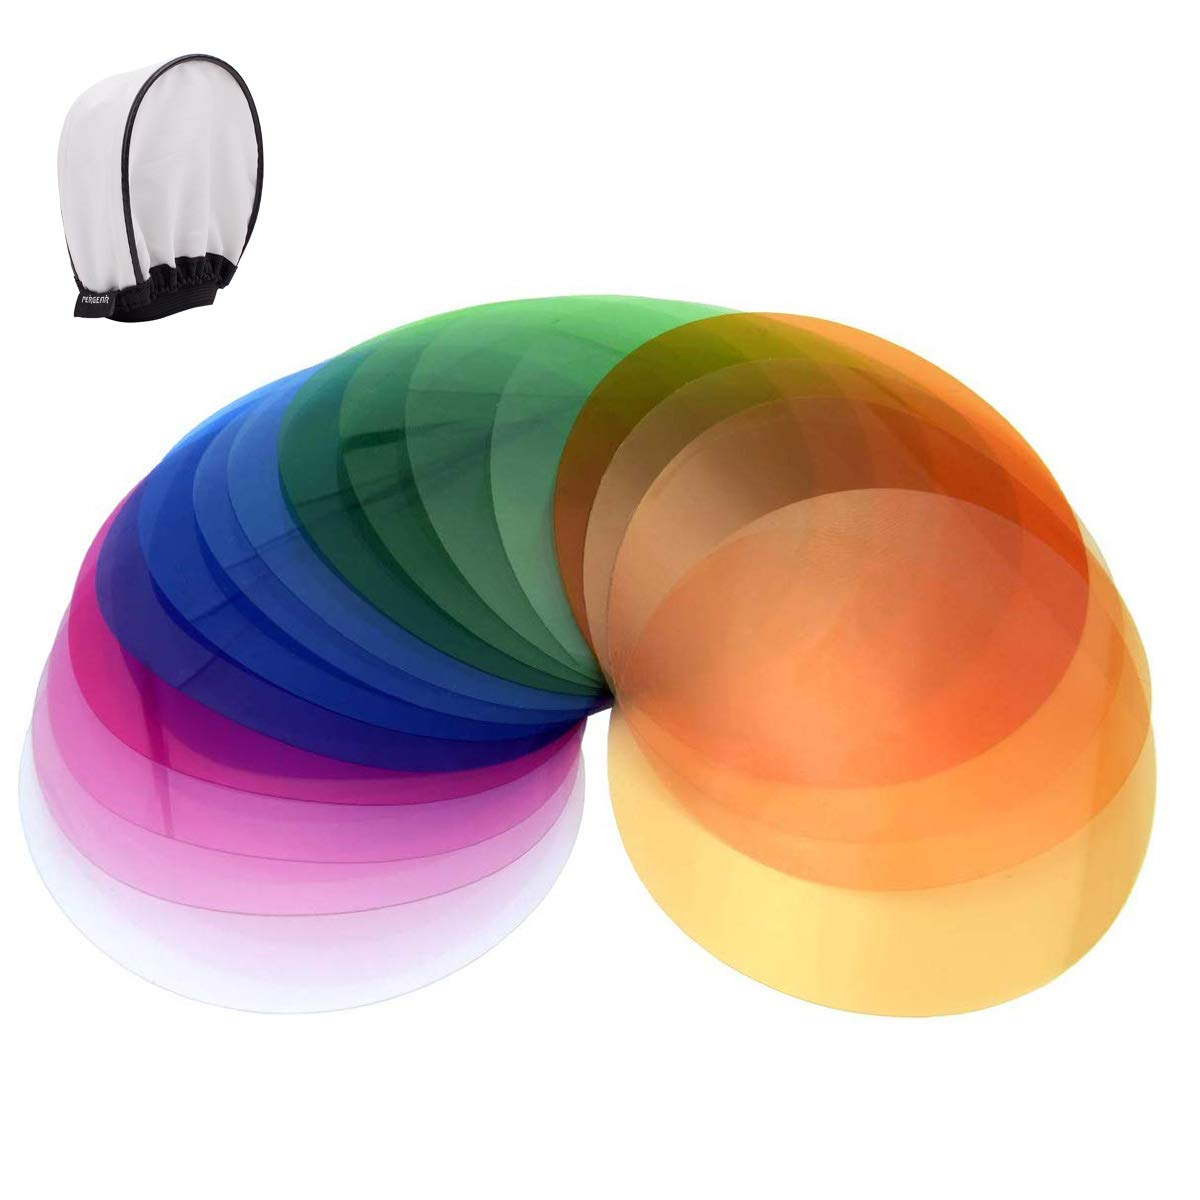 Godox V-11T Color Filters for Color Temperature Adjustment, Used with AK-R16 Diffuser Plate or AK-R1 kit,Compatible with Round Head Flash Godox V1-C,V1N,V1S,V1O,V1P,AD200 AD200PRO with H200R Ring